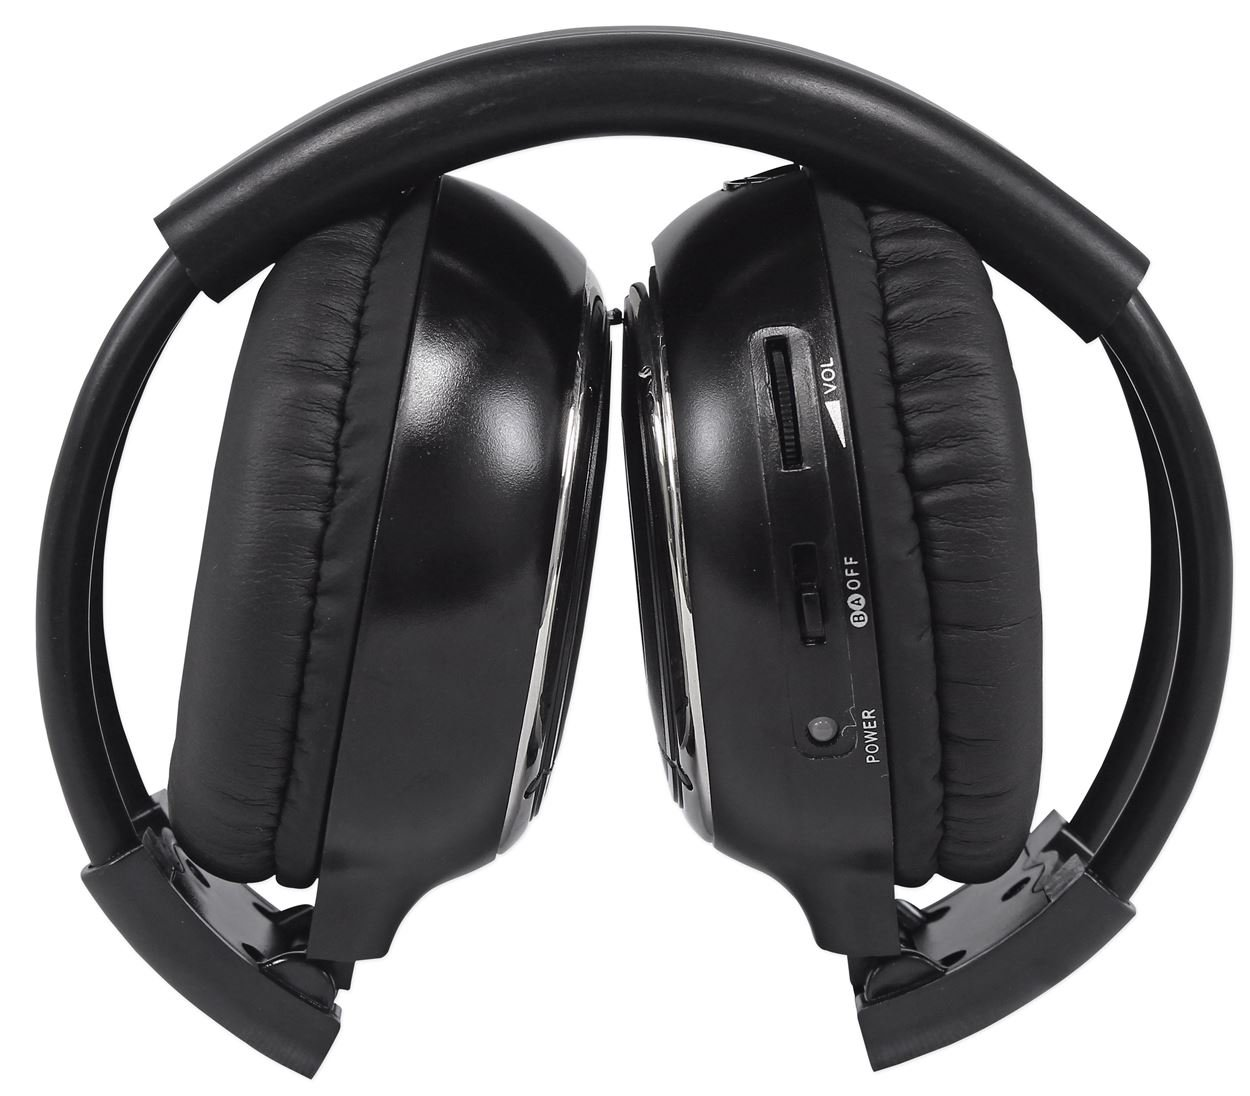 Rockville RFH3 Wireless Universal Infrared IR Car Headphones for Any Car Monitor by Rockville